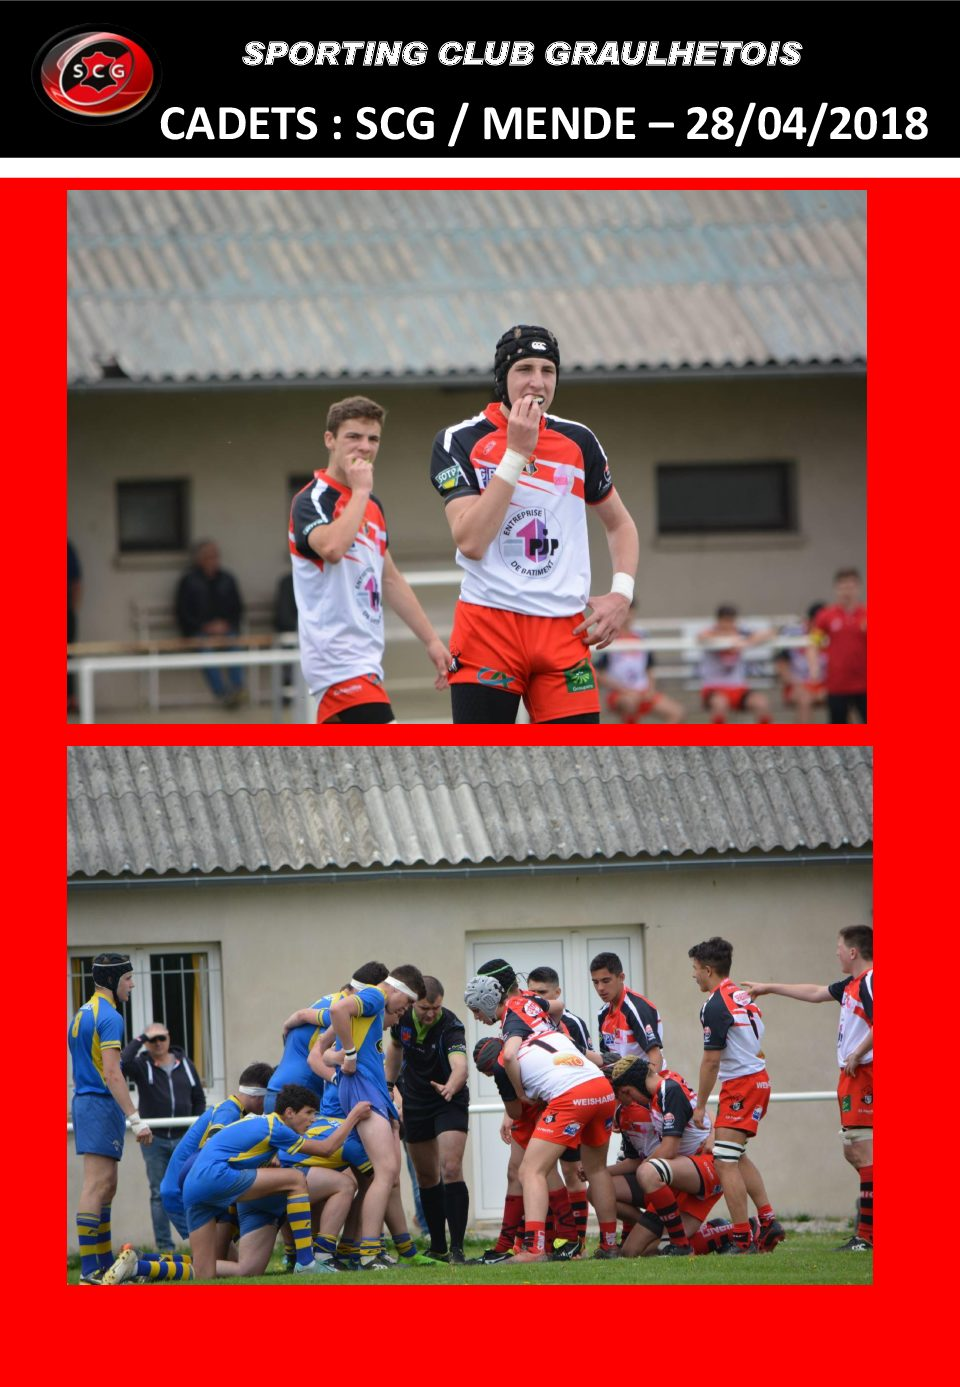 http://scg-rugby.com/wp-content/uploads/2018/04/CADETS-MATCH-MENDE1-pdf-2.jpg